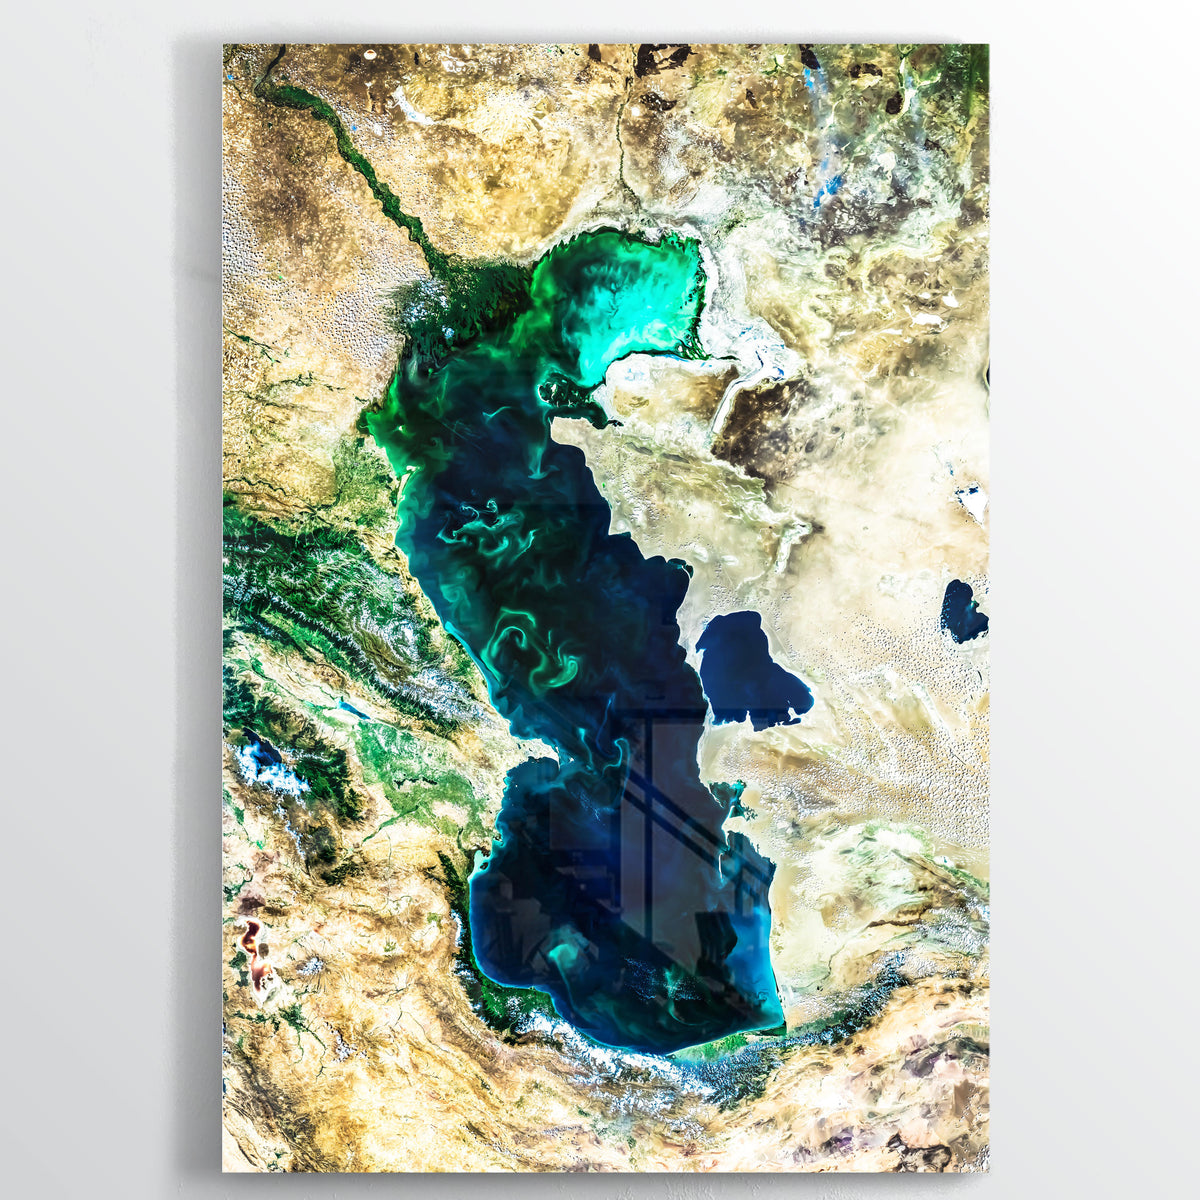 Caspian Sea Earth Photography - Floating Acrylic Art - Point Two Design